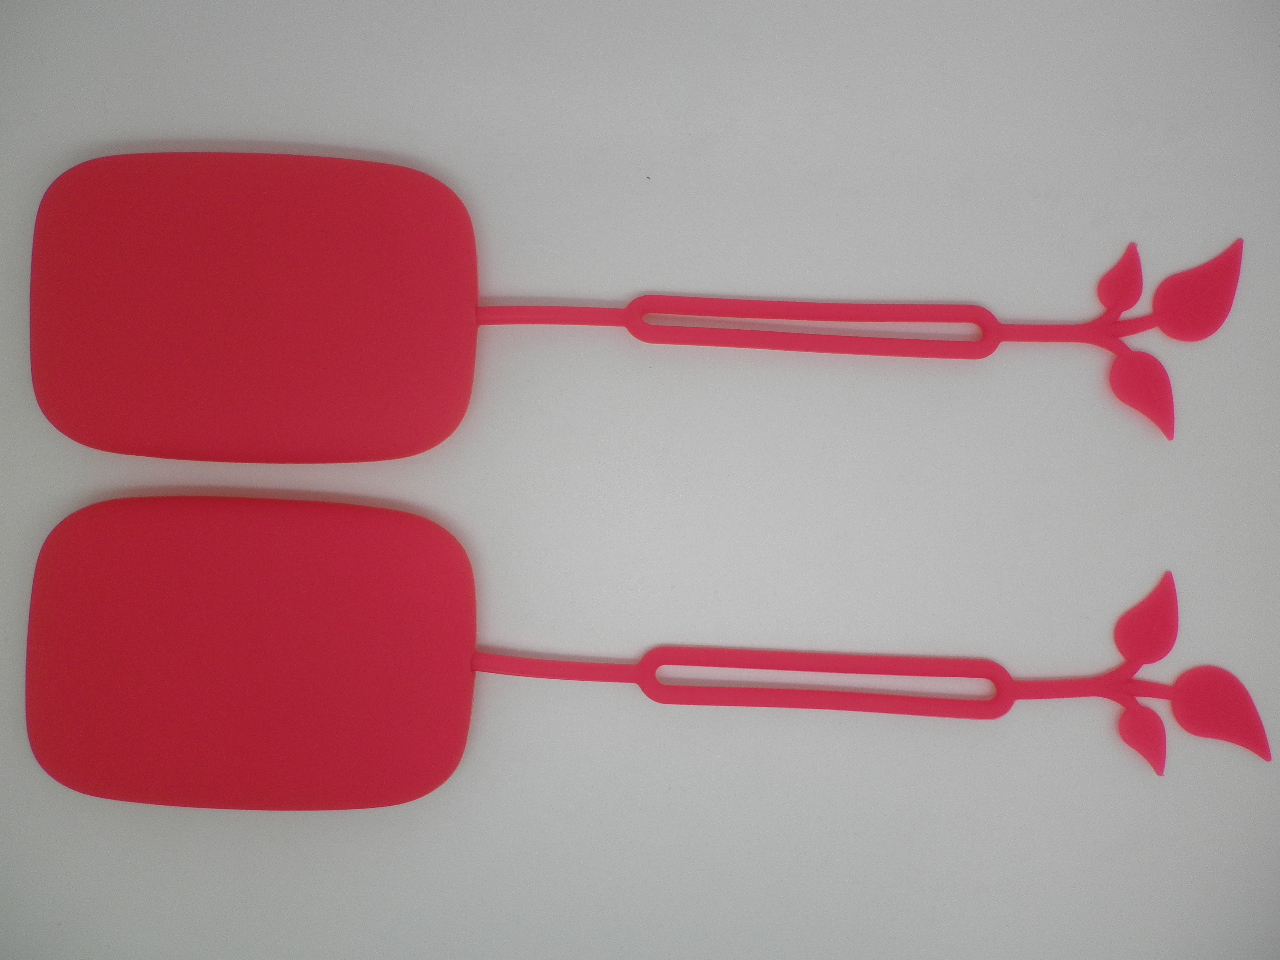 http://www.refinehksilicone.cn/data/images/product/20180417111009_134.JPG